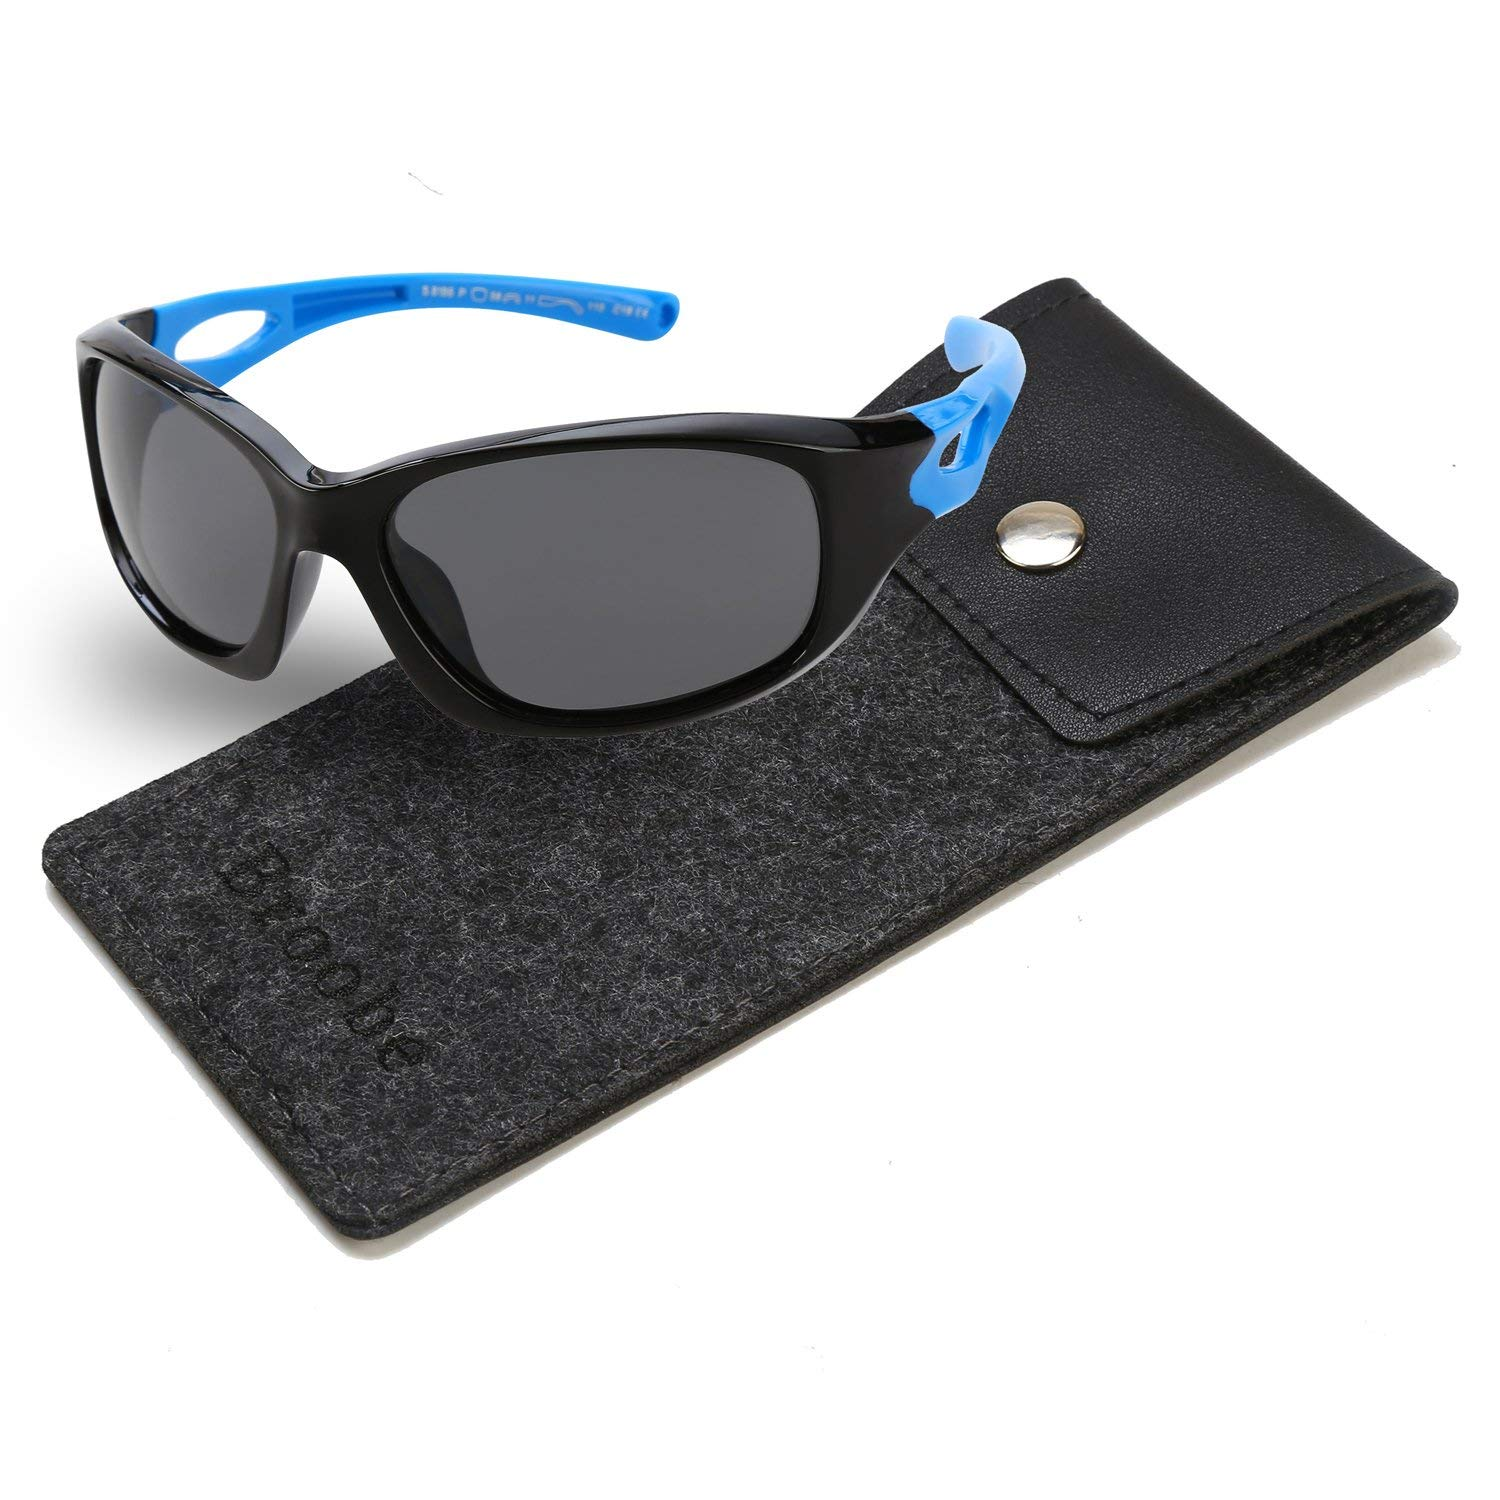 f3d946e4f0d0 Get Quotations · Brooben Kids Sports Style Polarized Sunglasses Rubber  Flexible Frame For Boys And Girls S8186